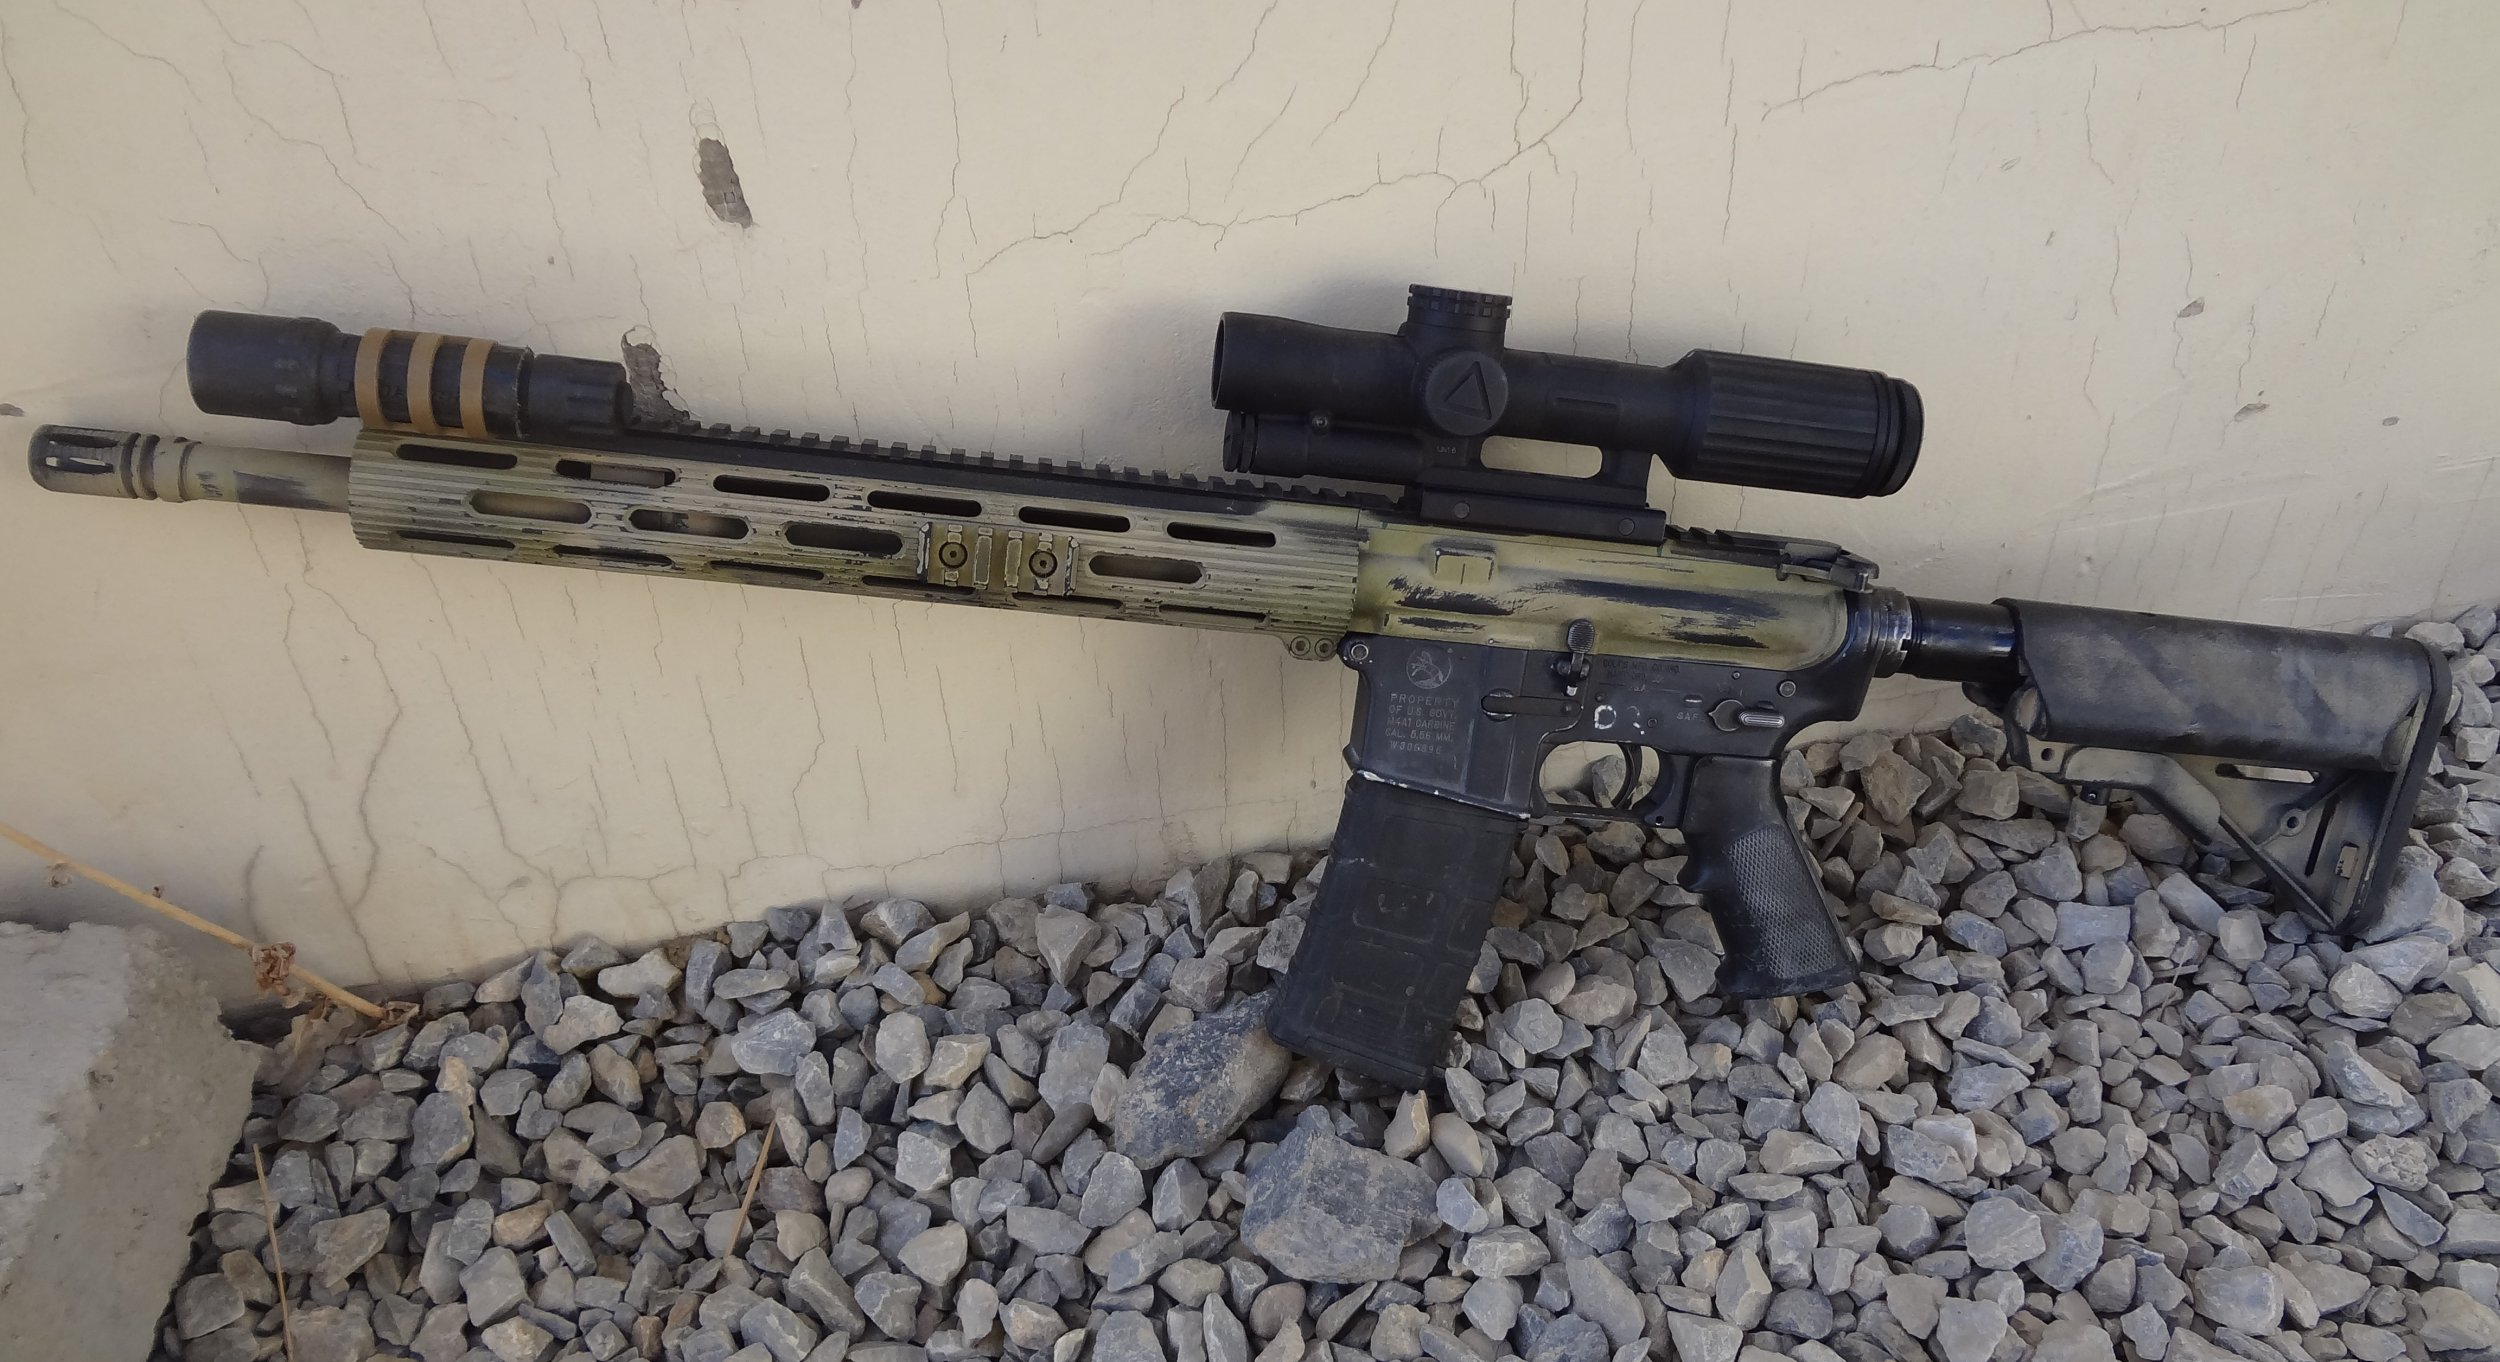 Tactical Ar 15m4m4a1 Carbine Aftermarket Accessories For Military